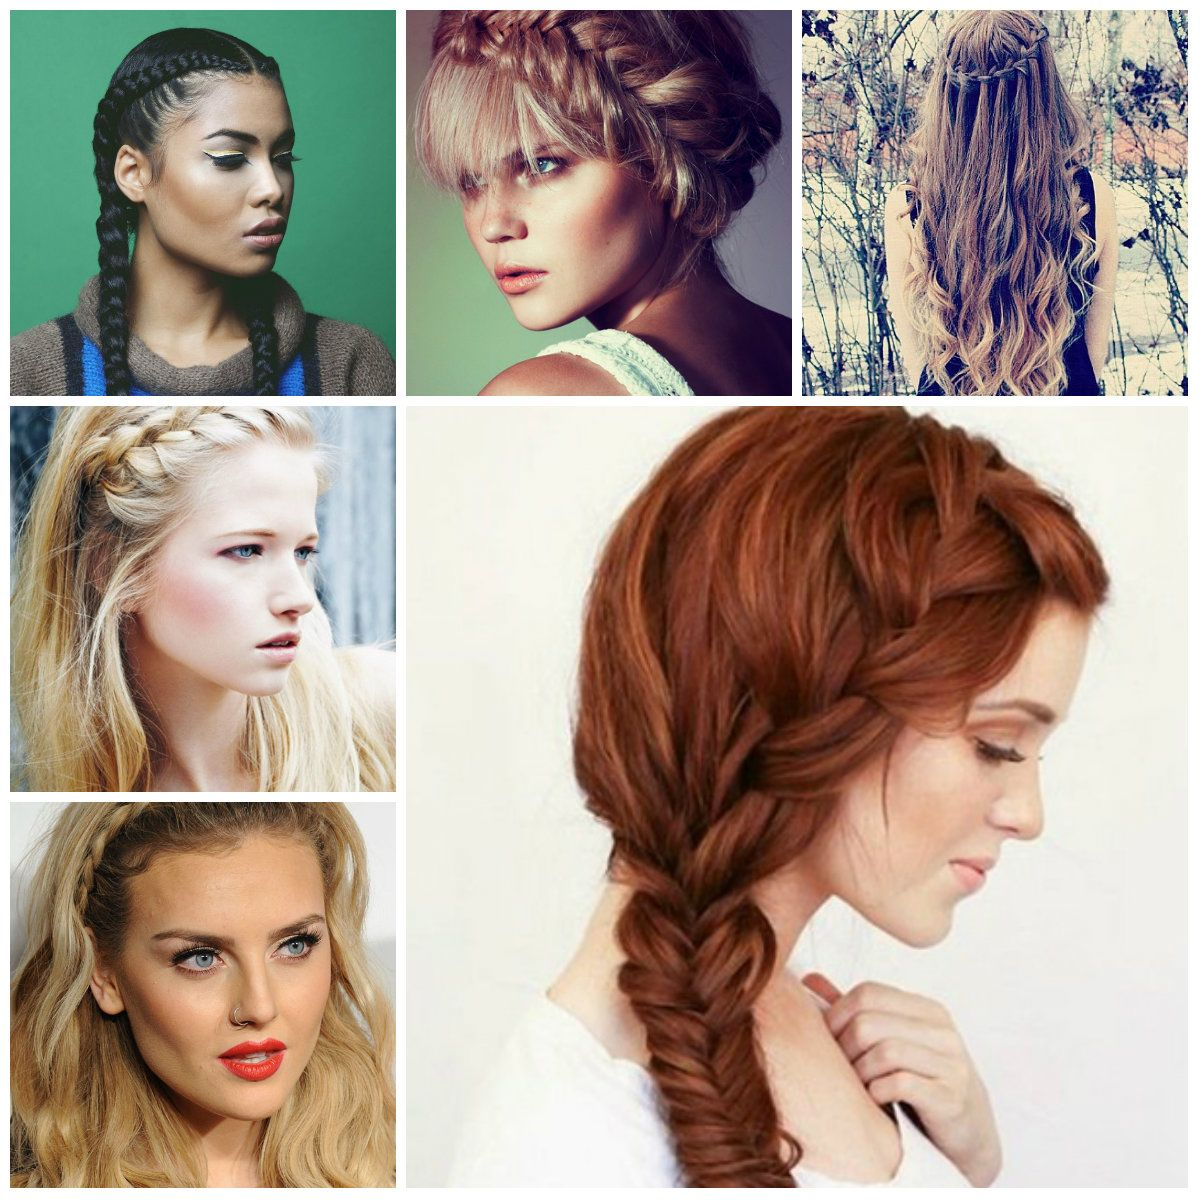 11 Braided Hairstyles for 2016 | Trendy Hairstyles 2015 / 2016 for ...